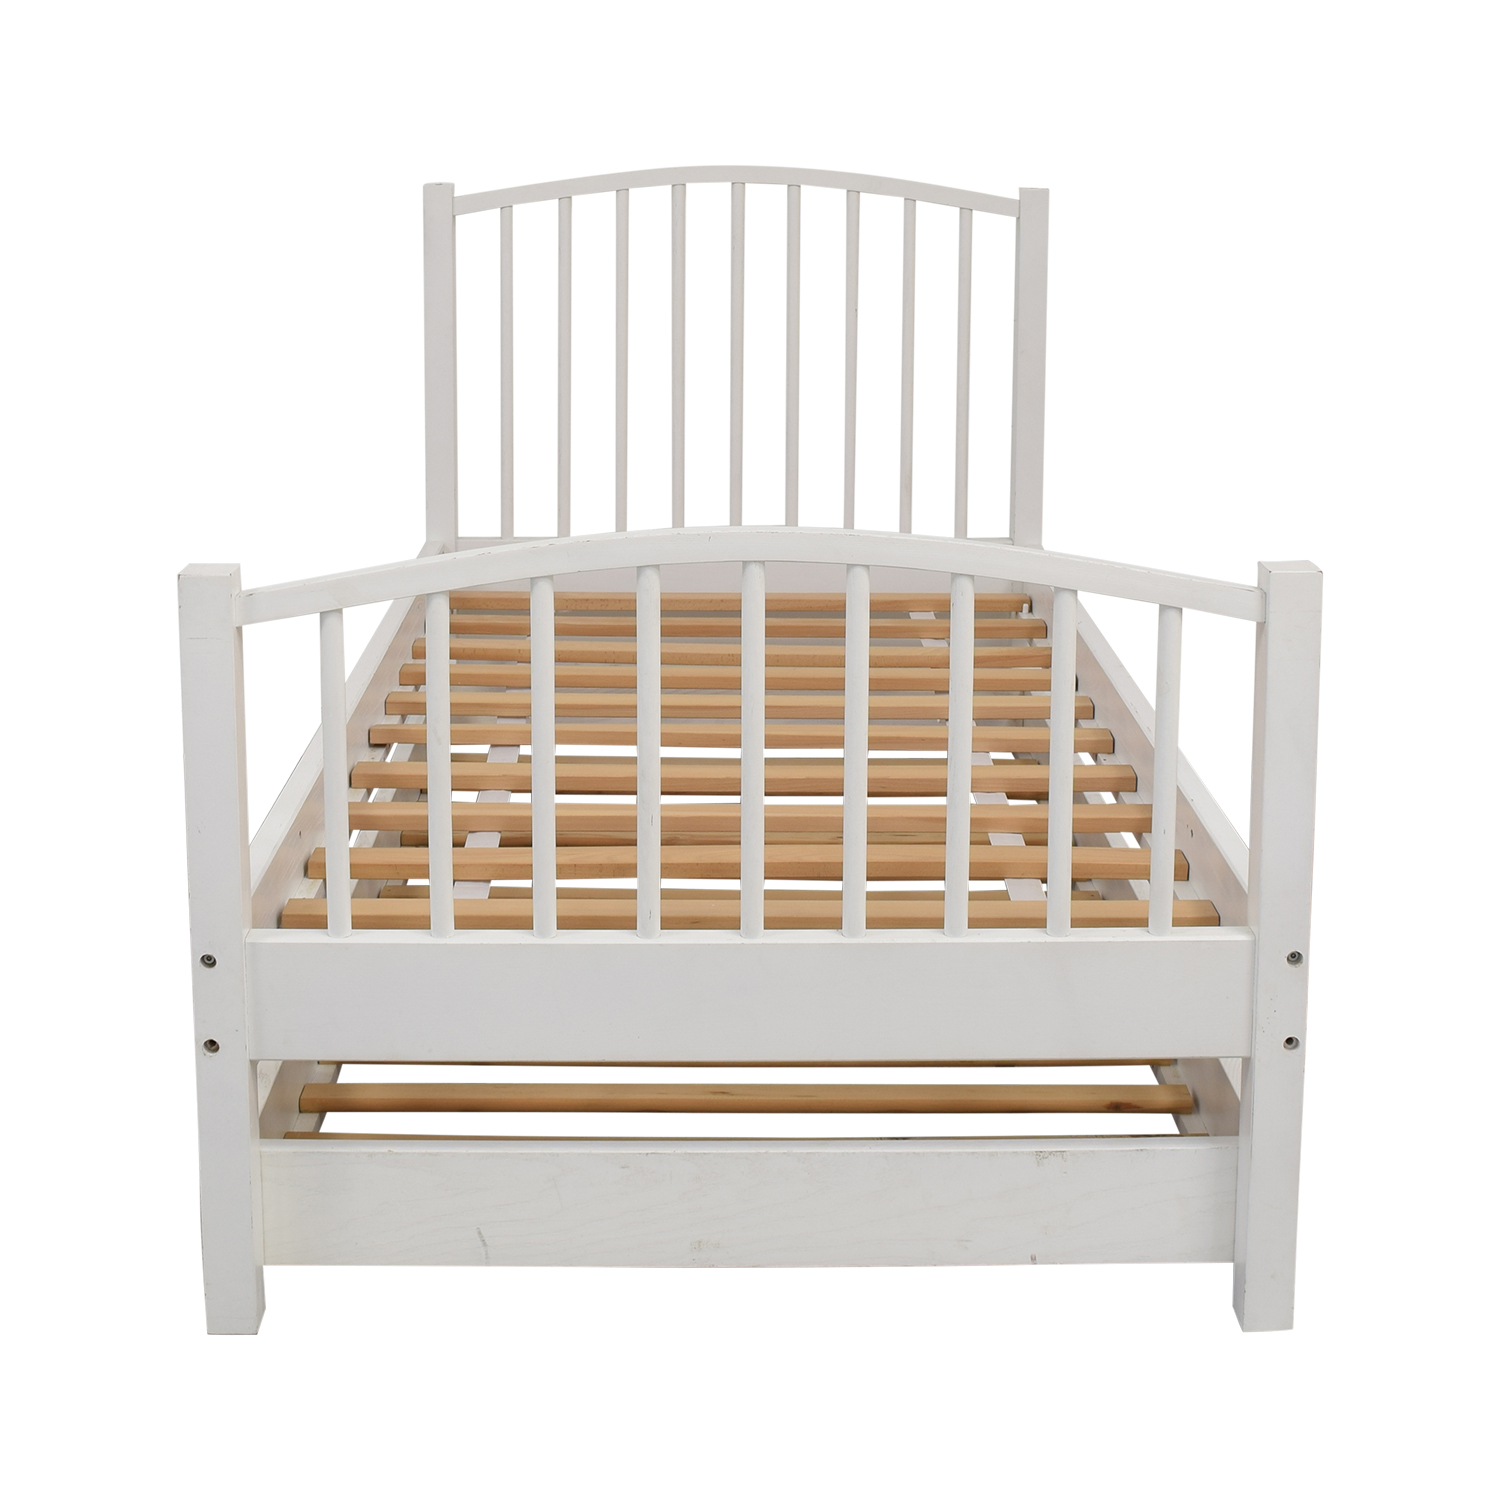 buy Vermont Tubbs Vermont Tubbs Trundle Bed online